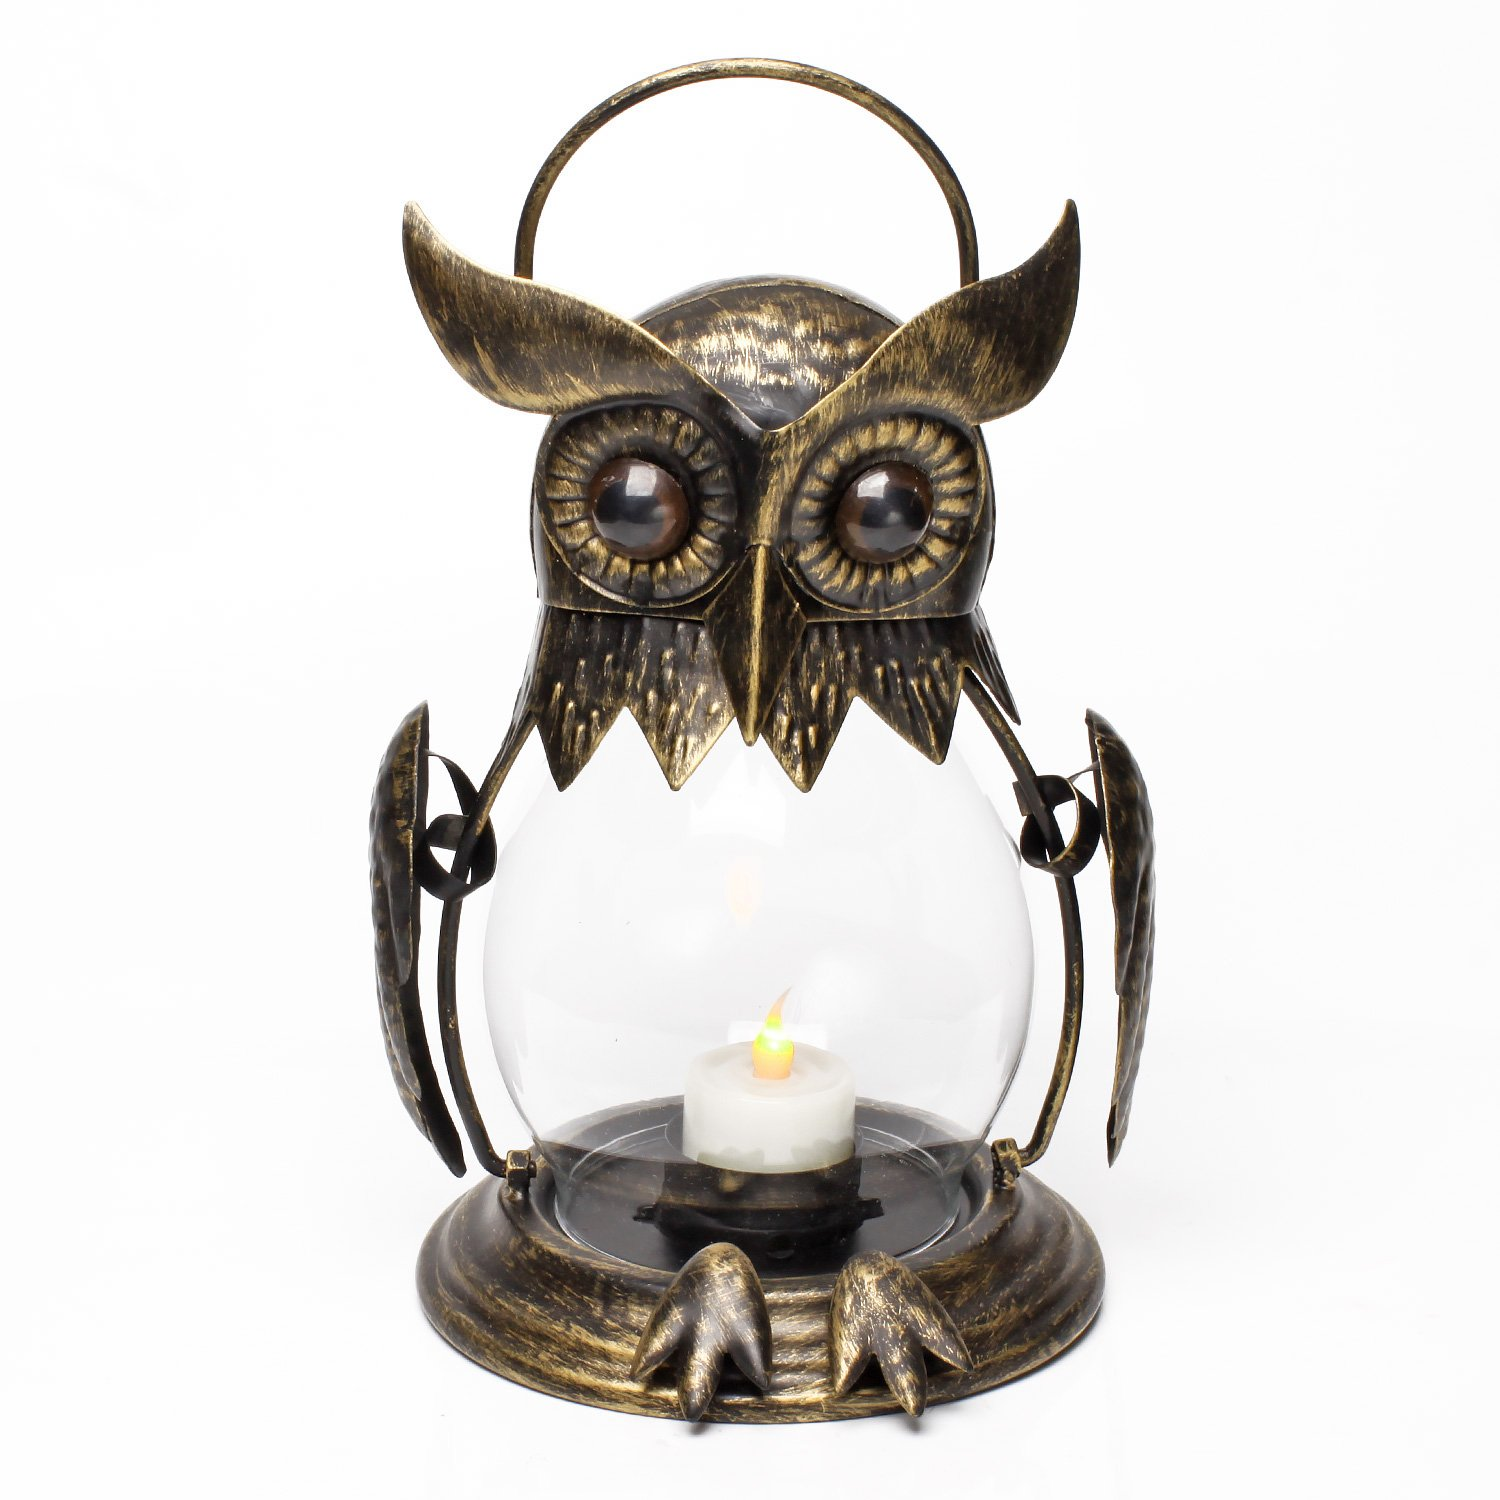 Tealight Included Owl Lover Birthday Gift Vintage Owl Hanging Lantern for Outdoor /& Indoor Party D/écor Red Bronze